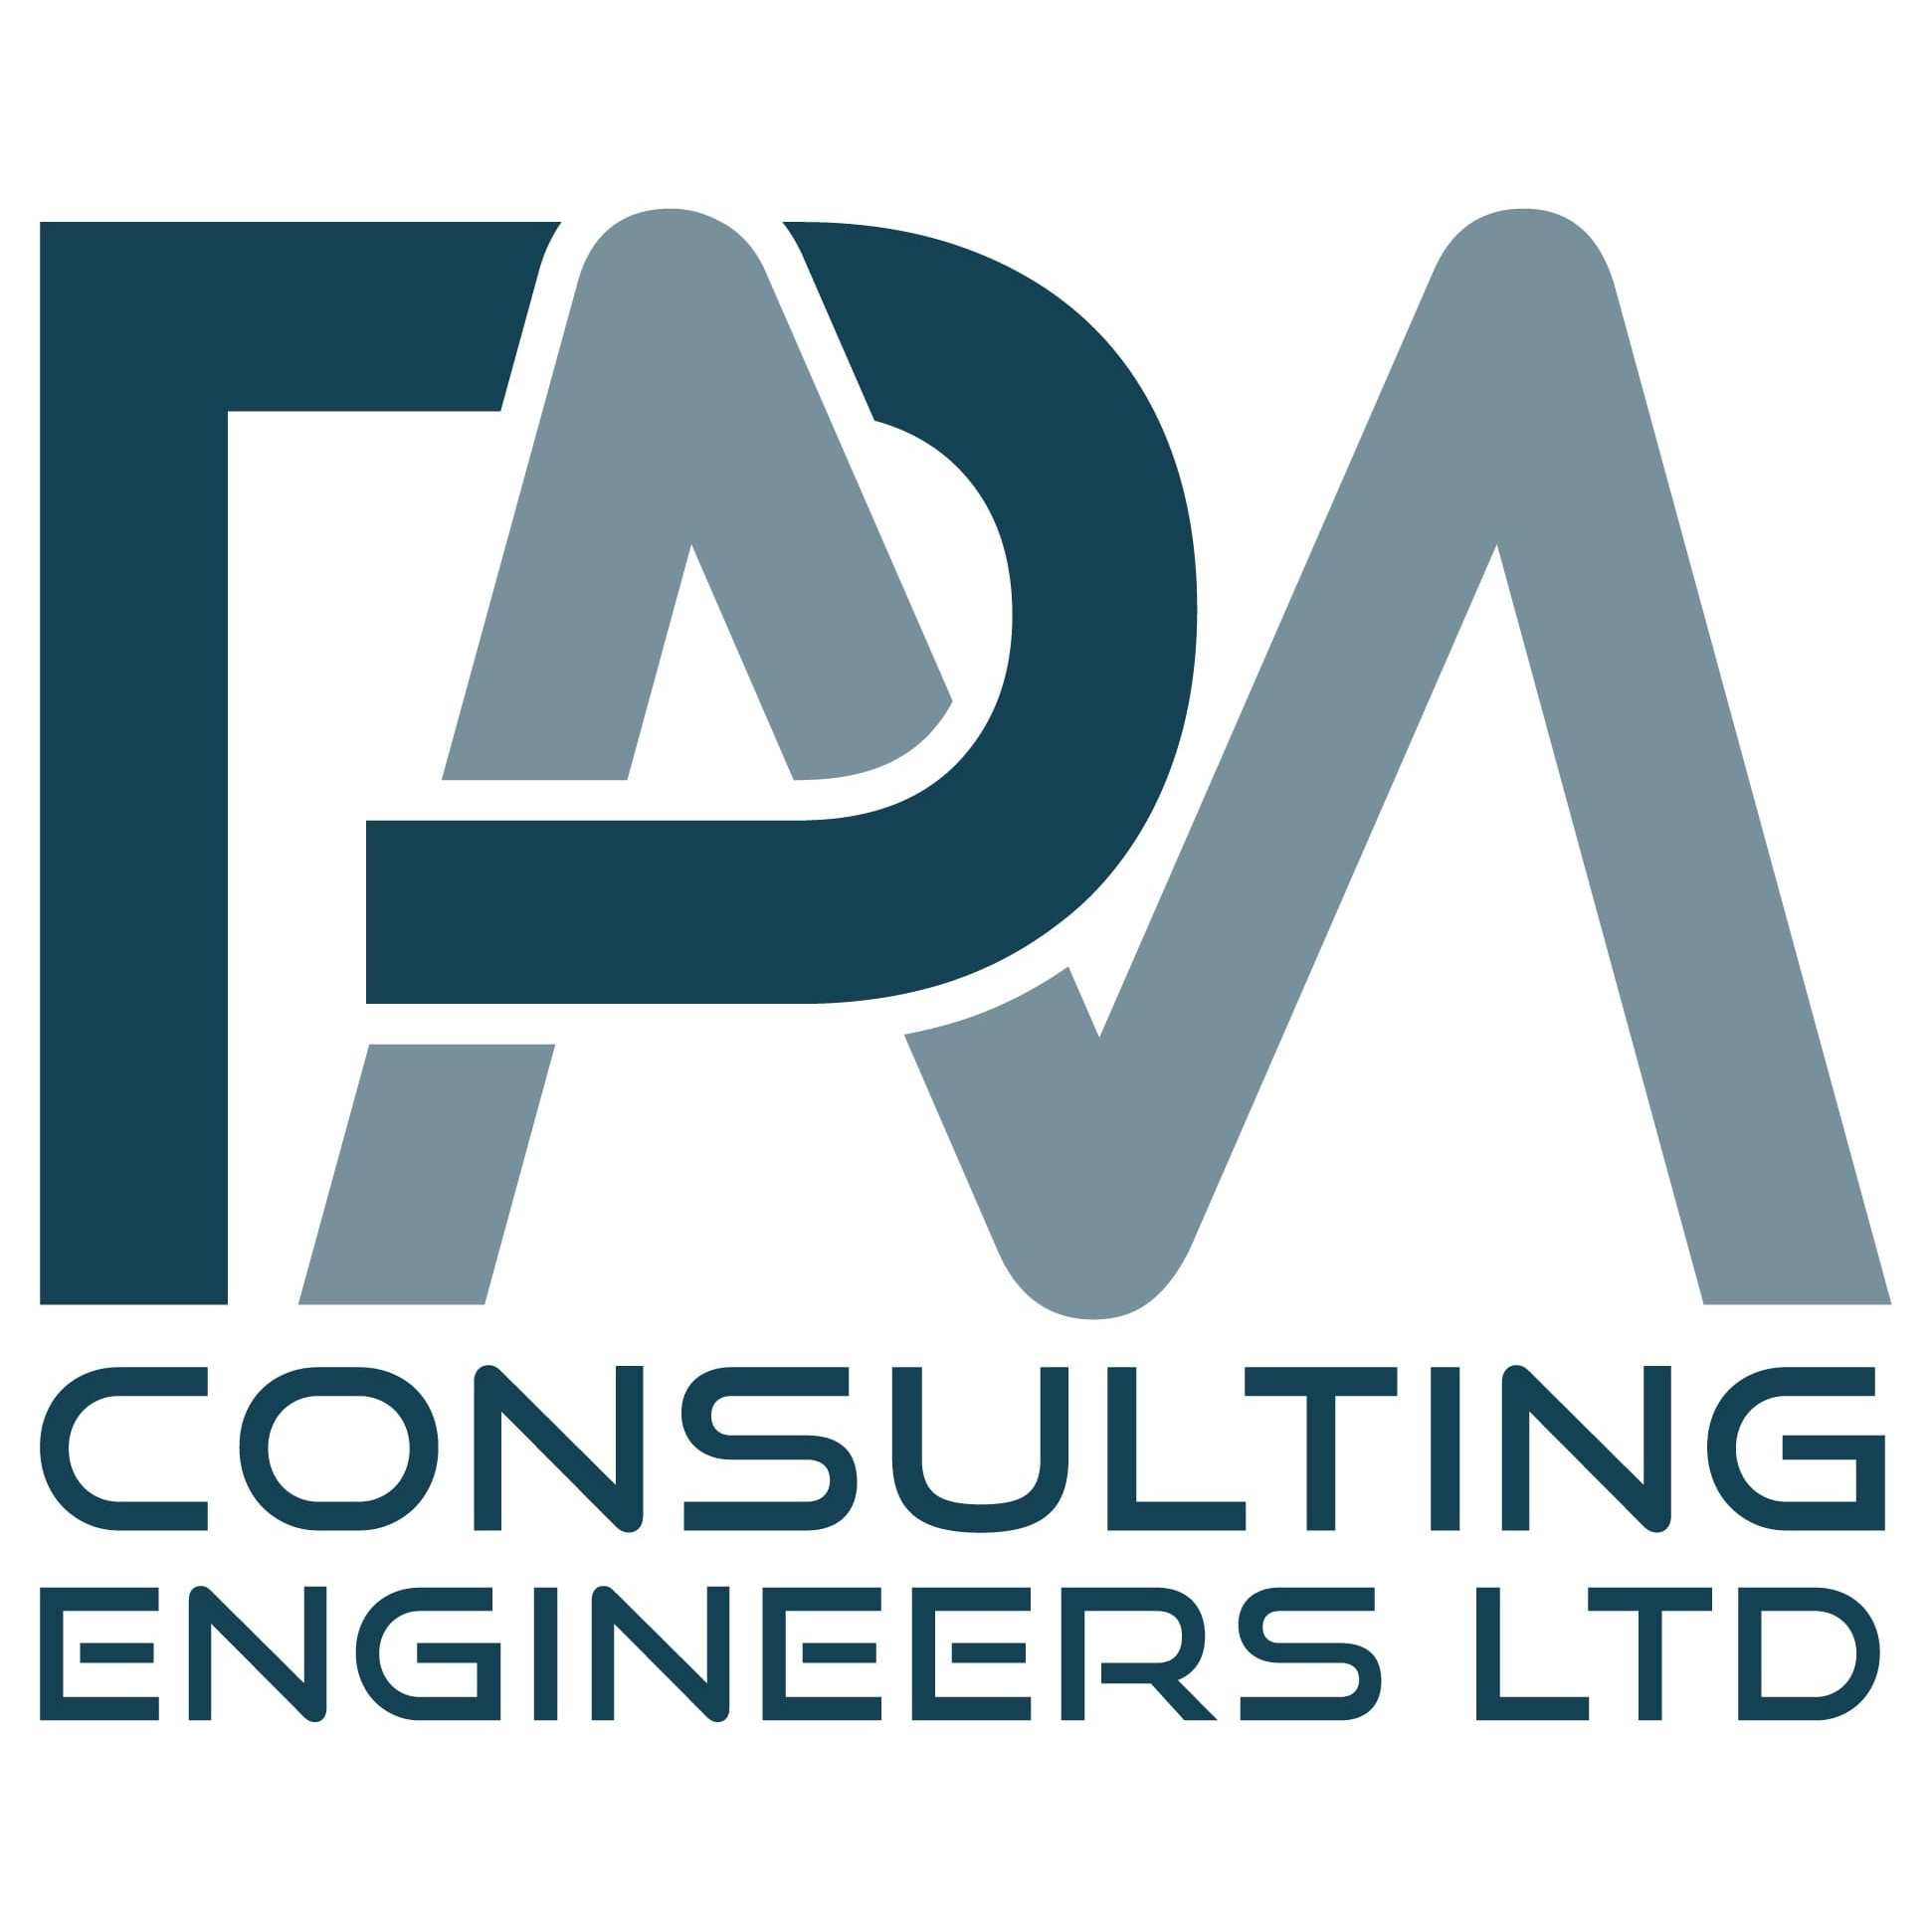 PM Consulting Engineers Ltd - Guisborough, North Yorkshire TS14 6HG - 01287 348404 | ShowMeLocal.com